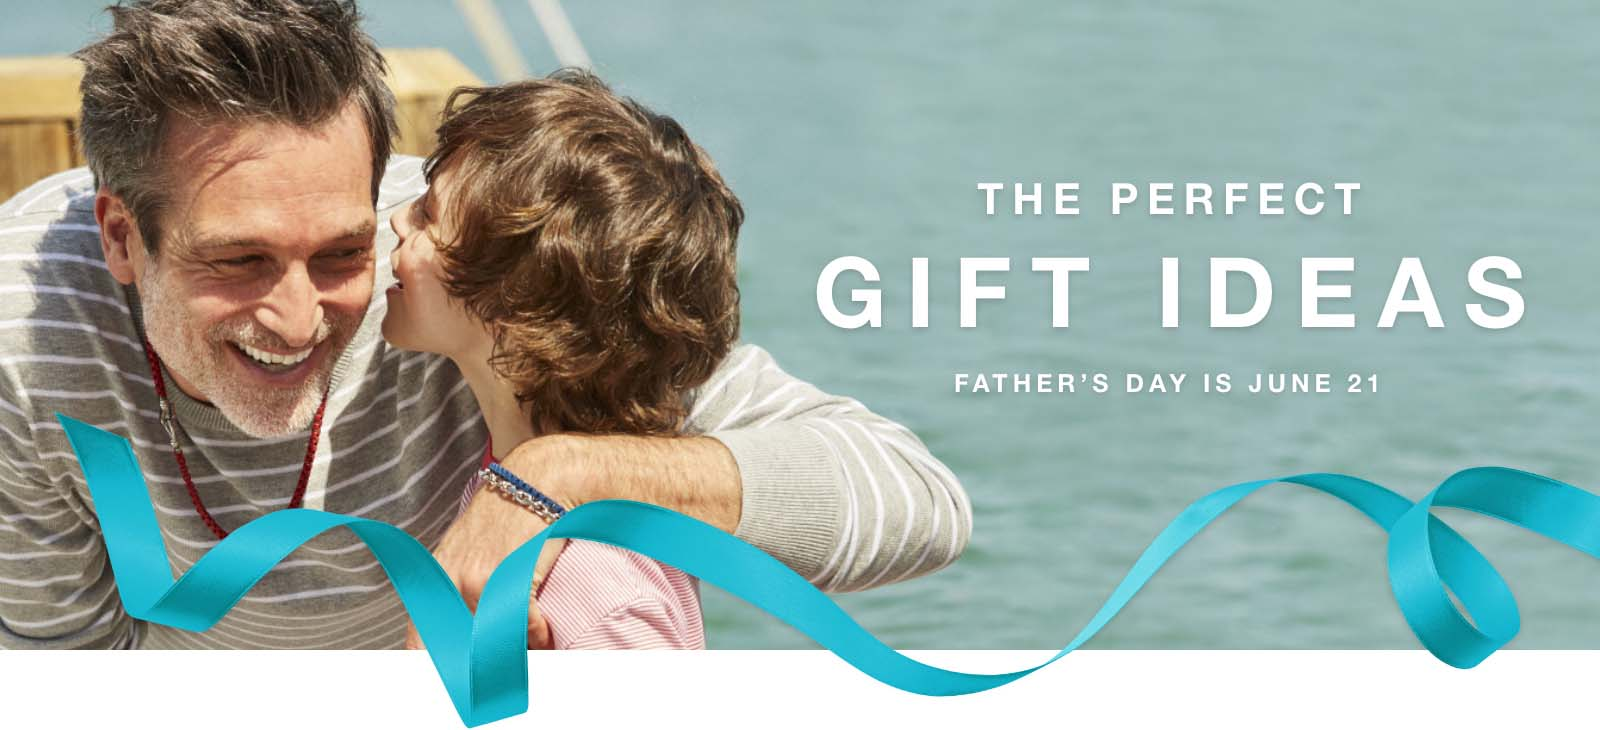 health Equipment To Gift Your Father On Father's Day